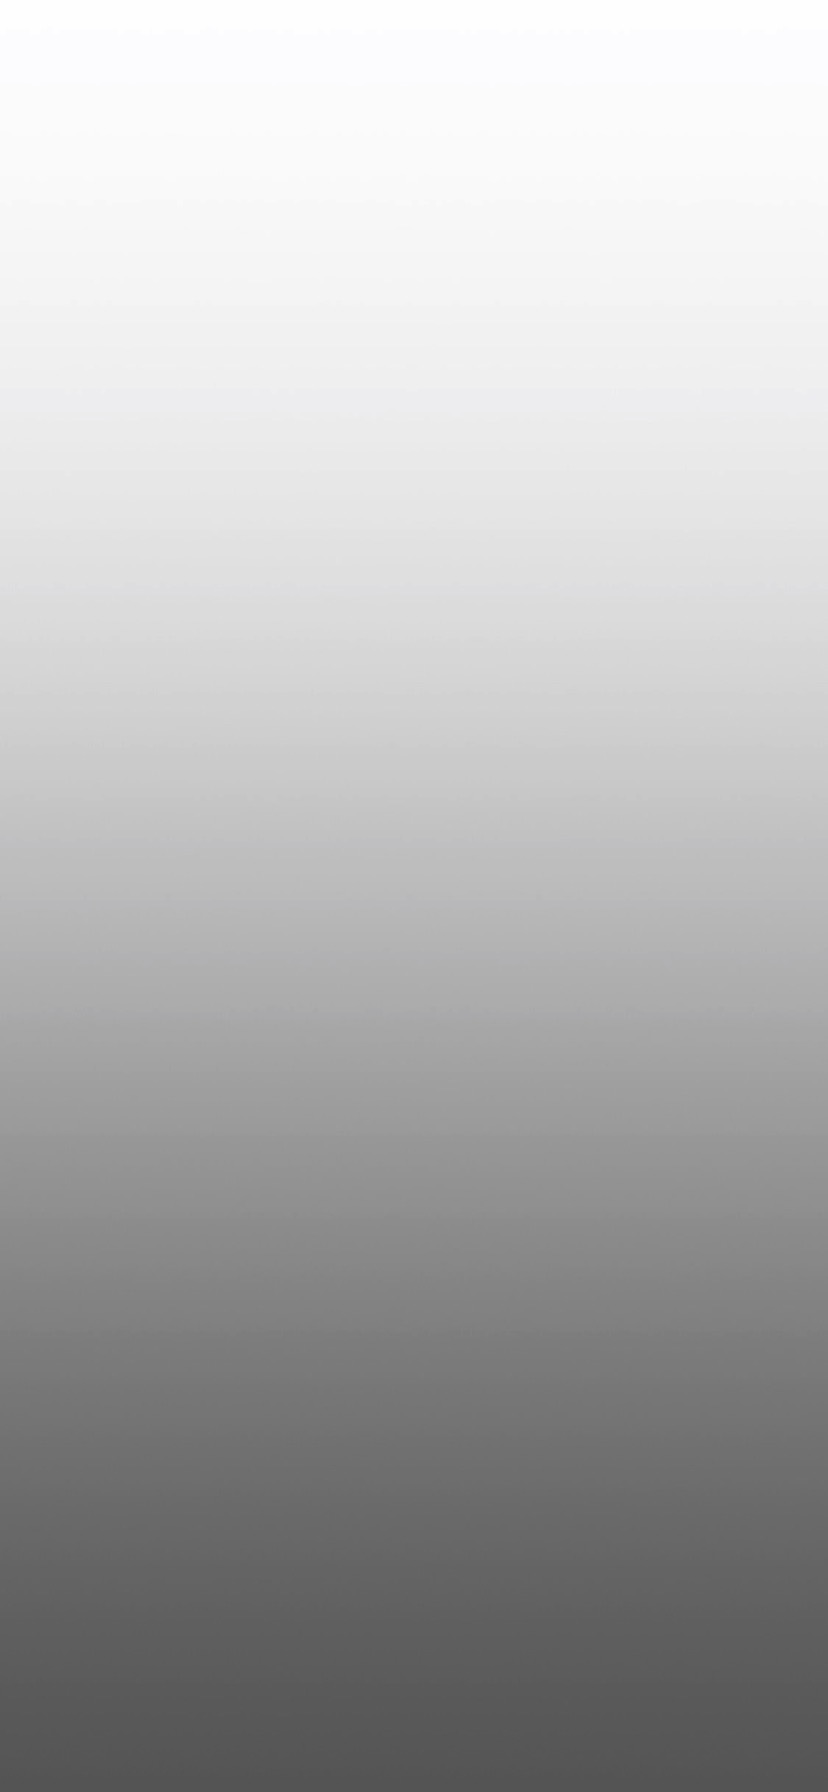 iPhone XR 壁紙 wallpaper 0522